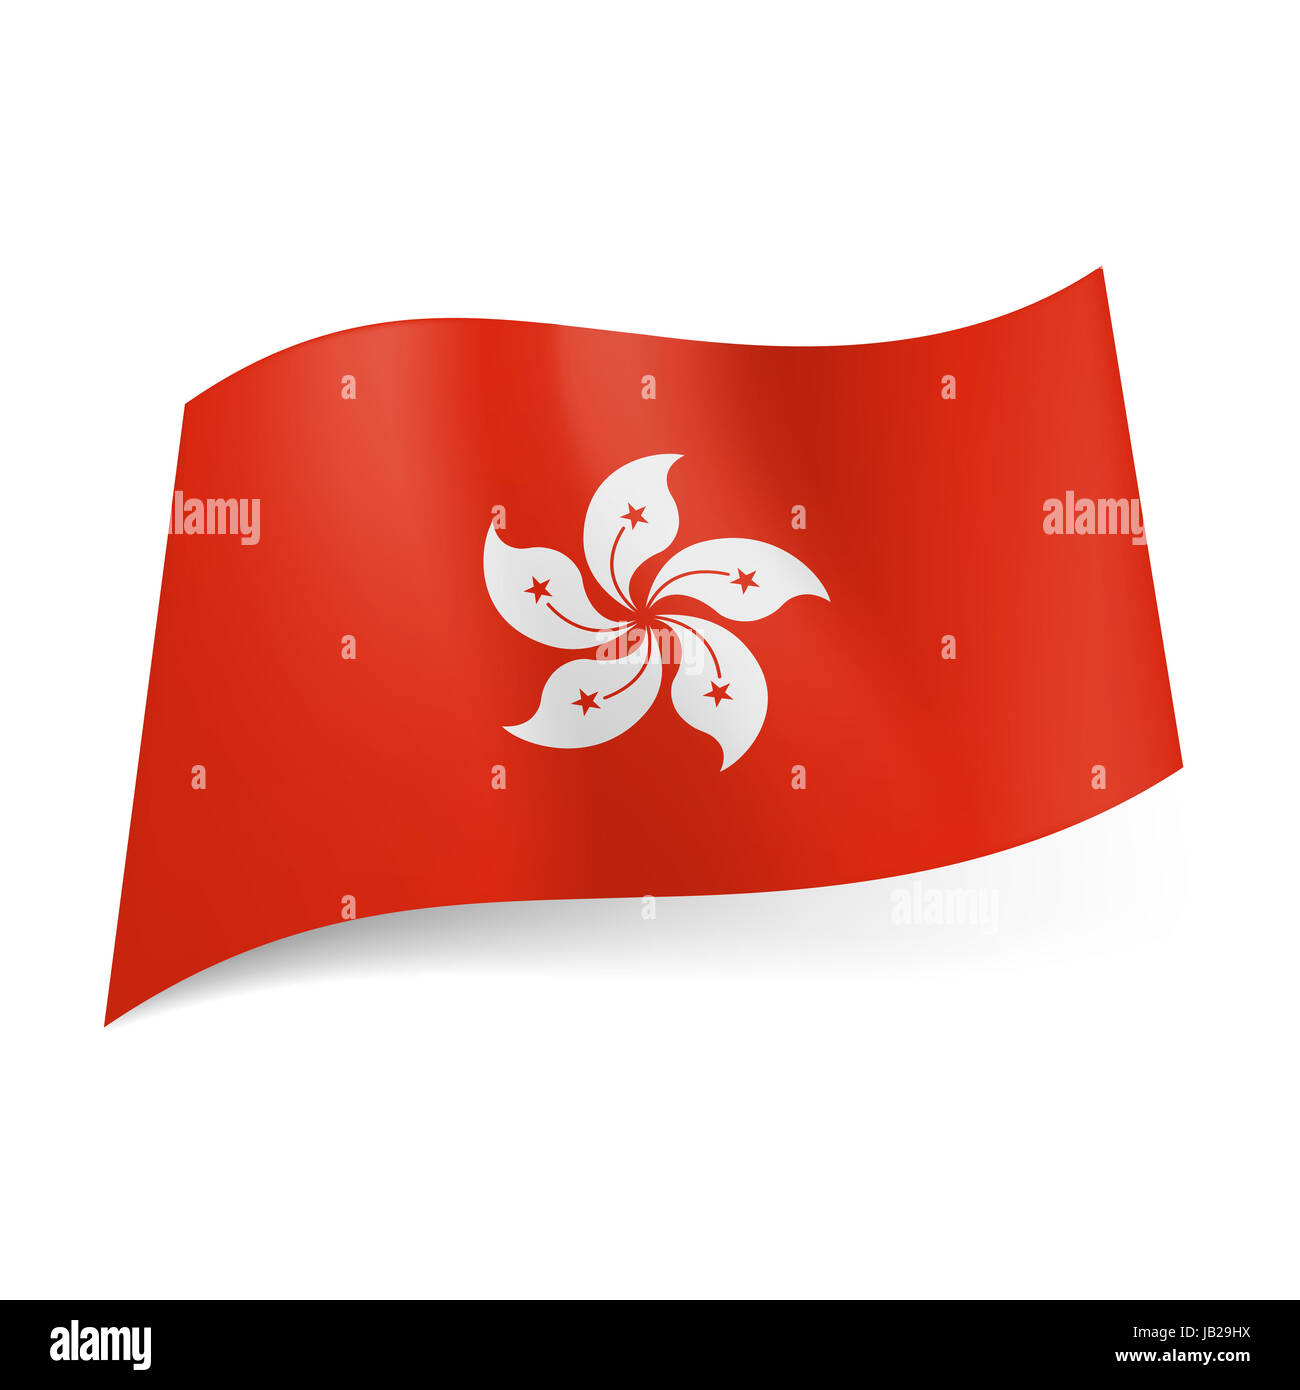 National flag of hong kong white orchid flower on red background national flag of hong kong white orchid flower on red background mightylinksfo